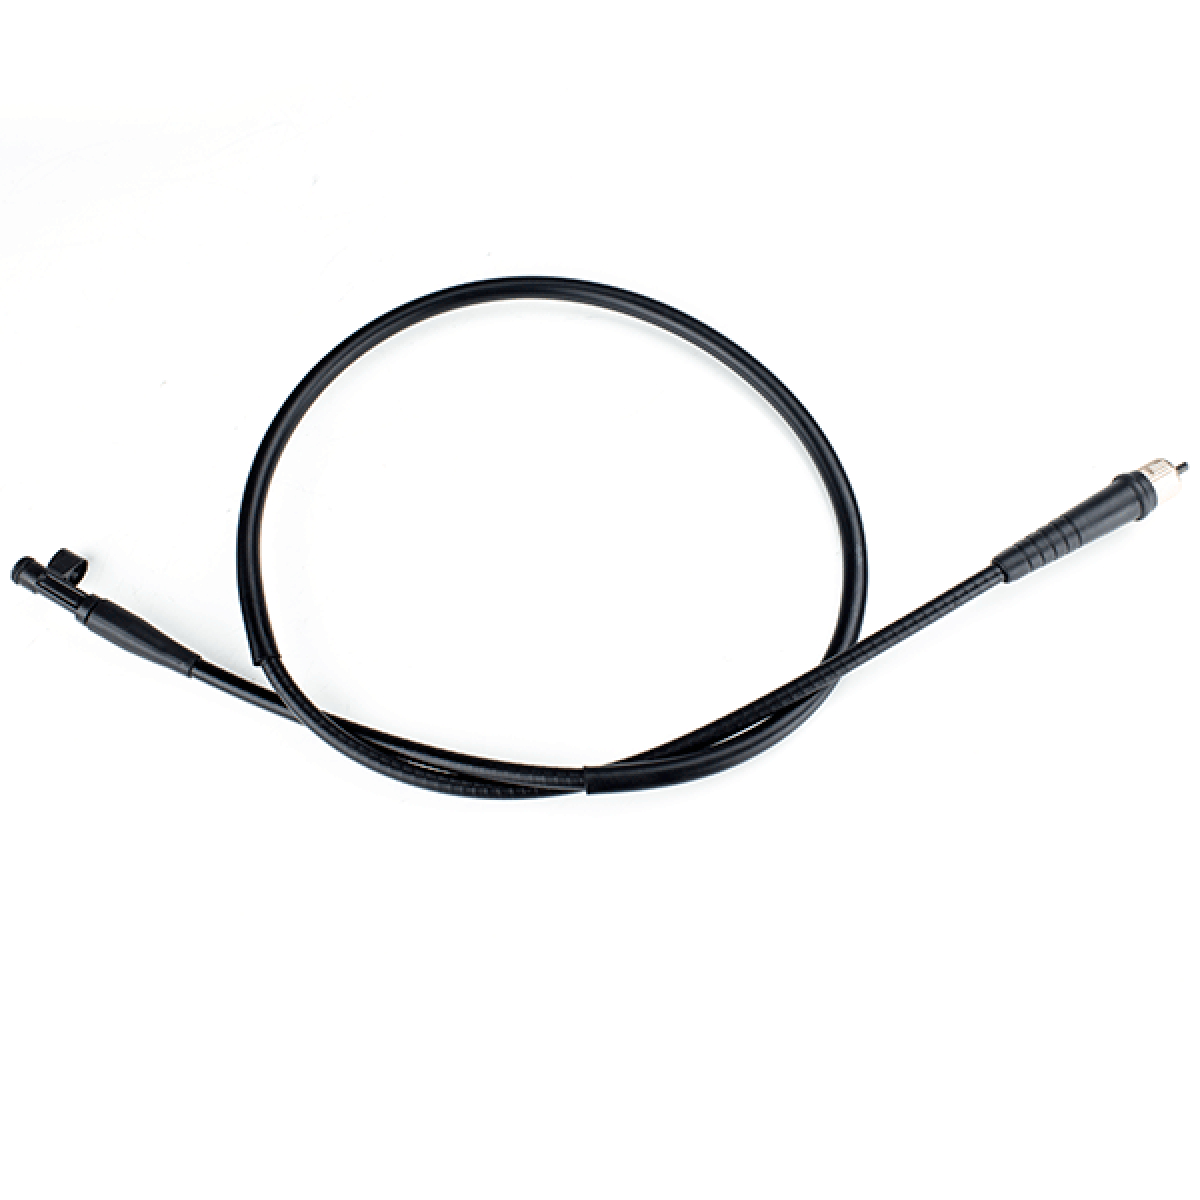 Speedo Cable Spcbl066 066